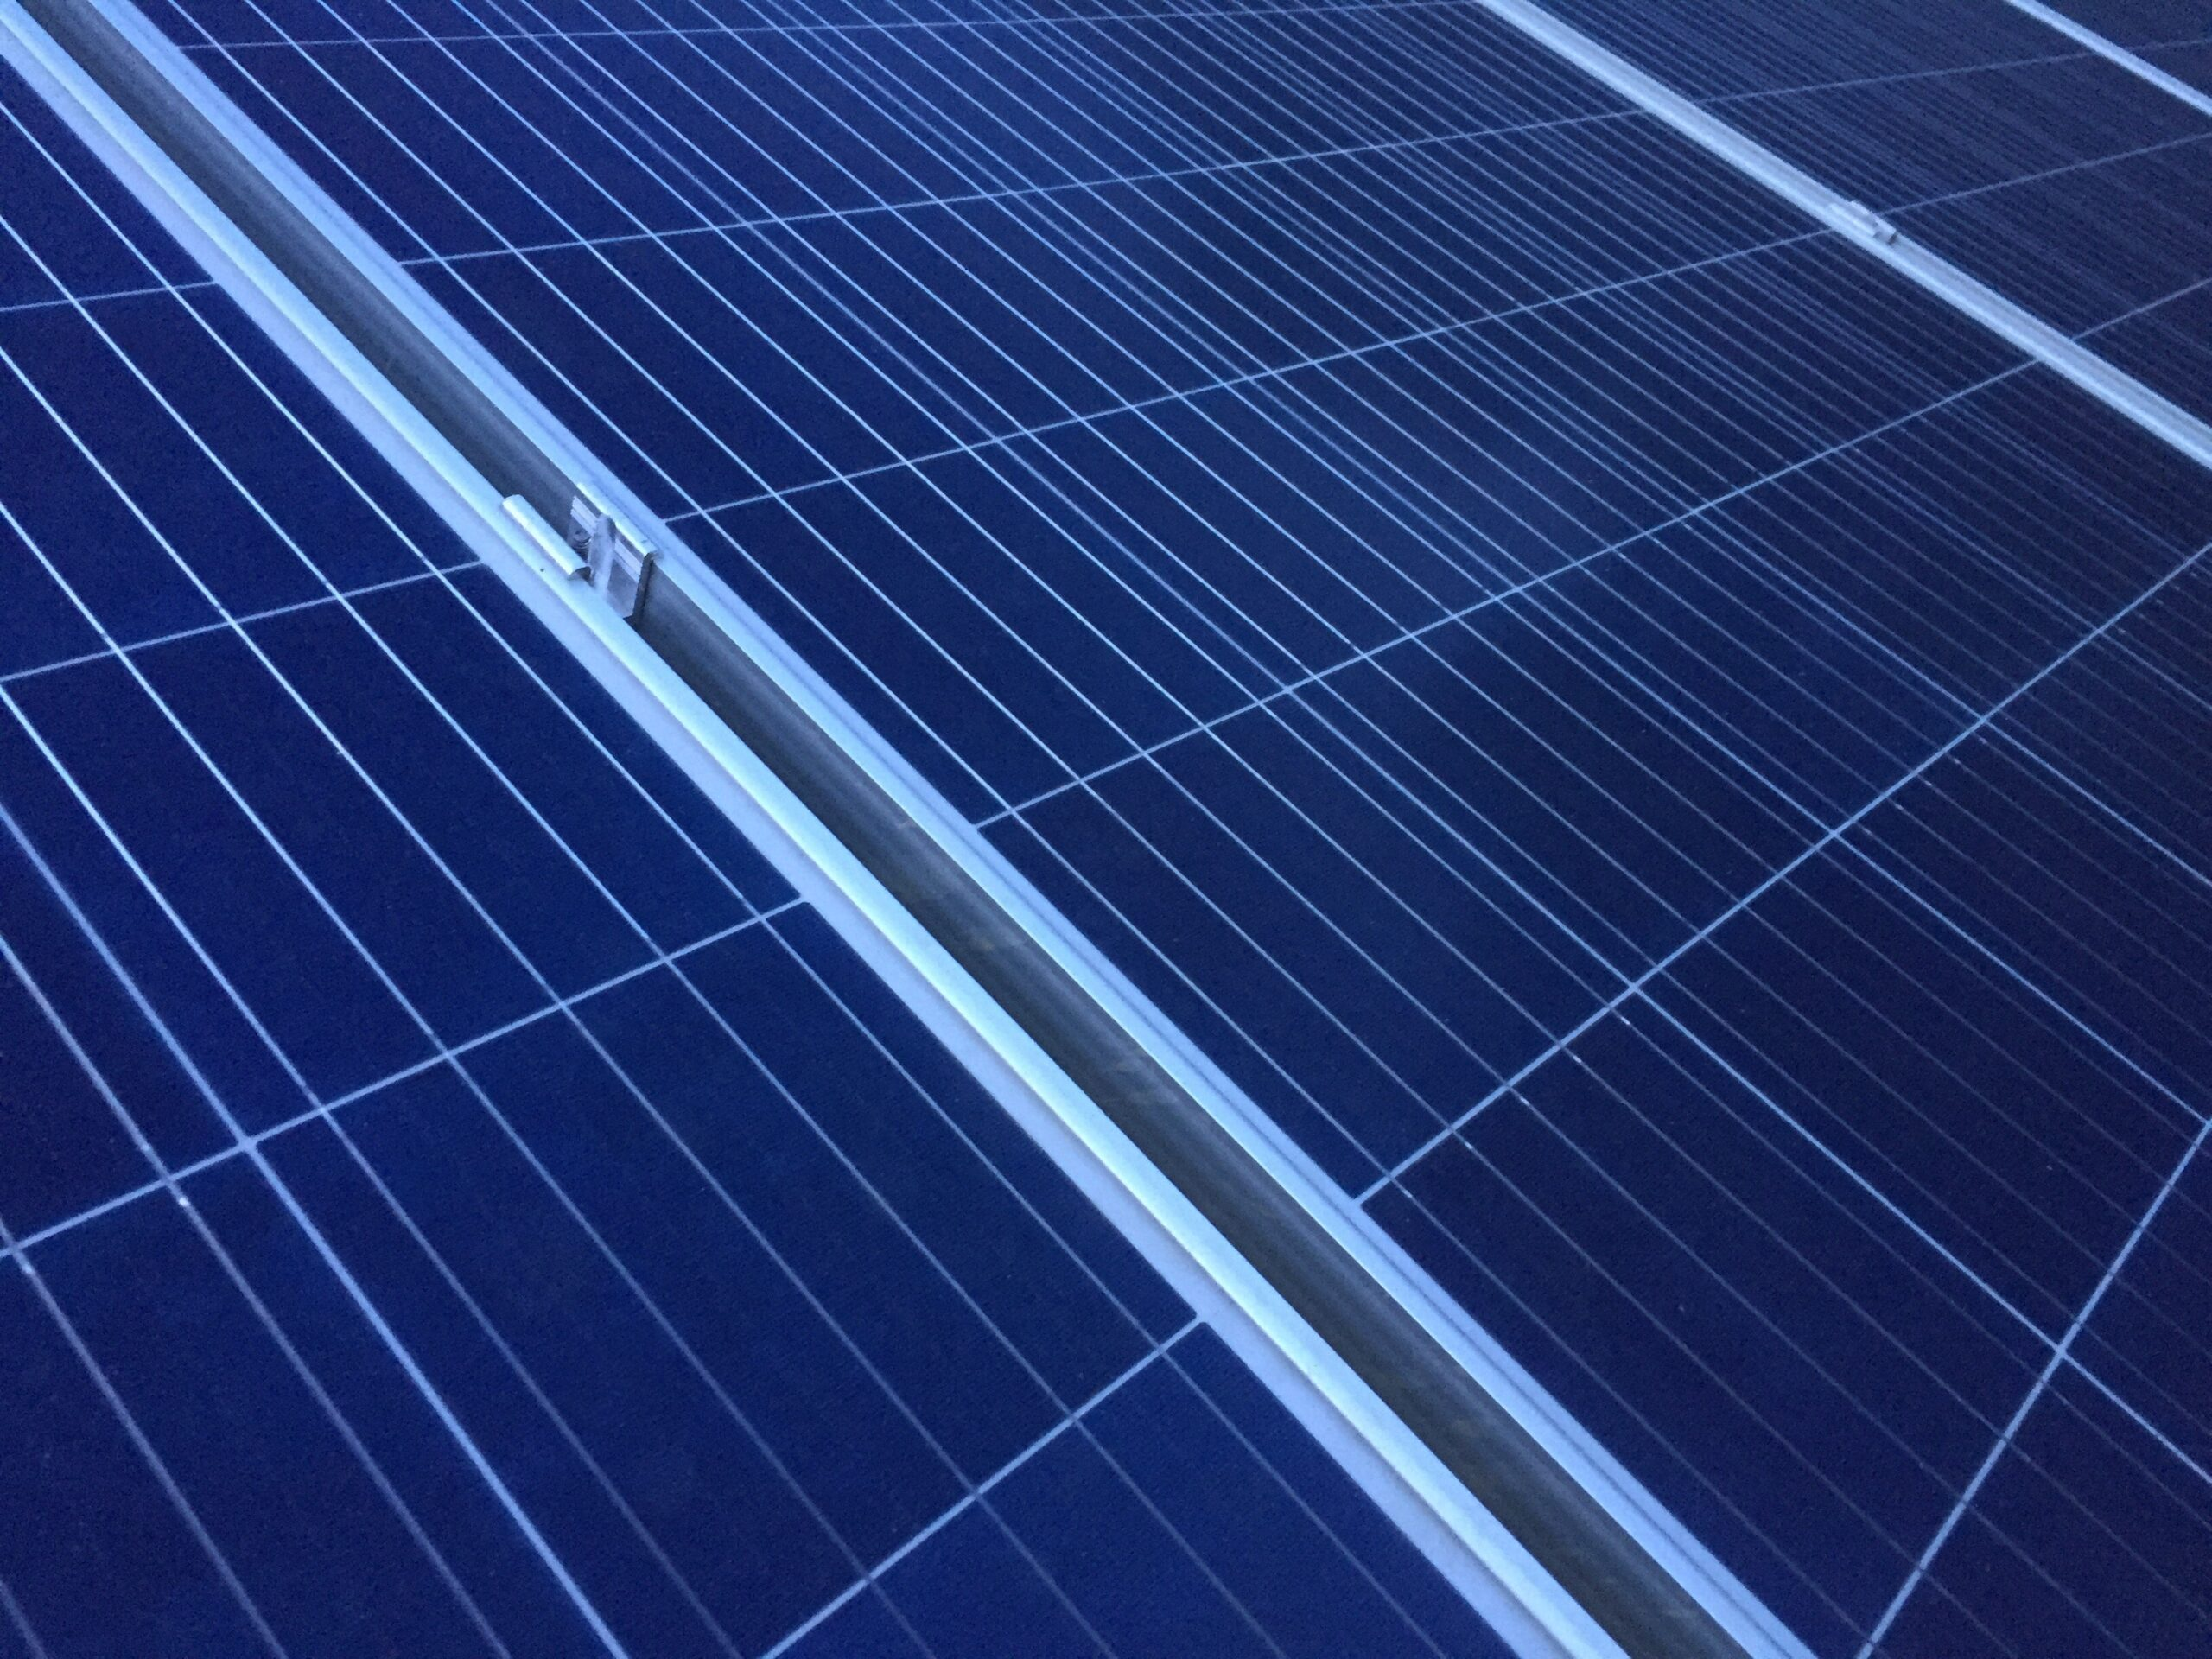 solar panels for my home